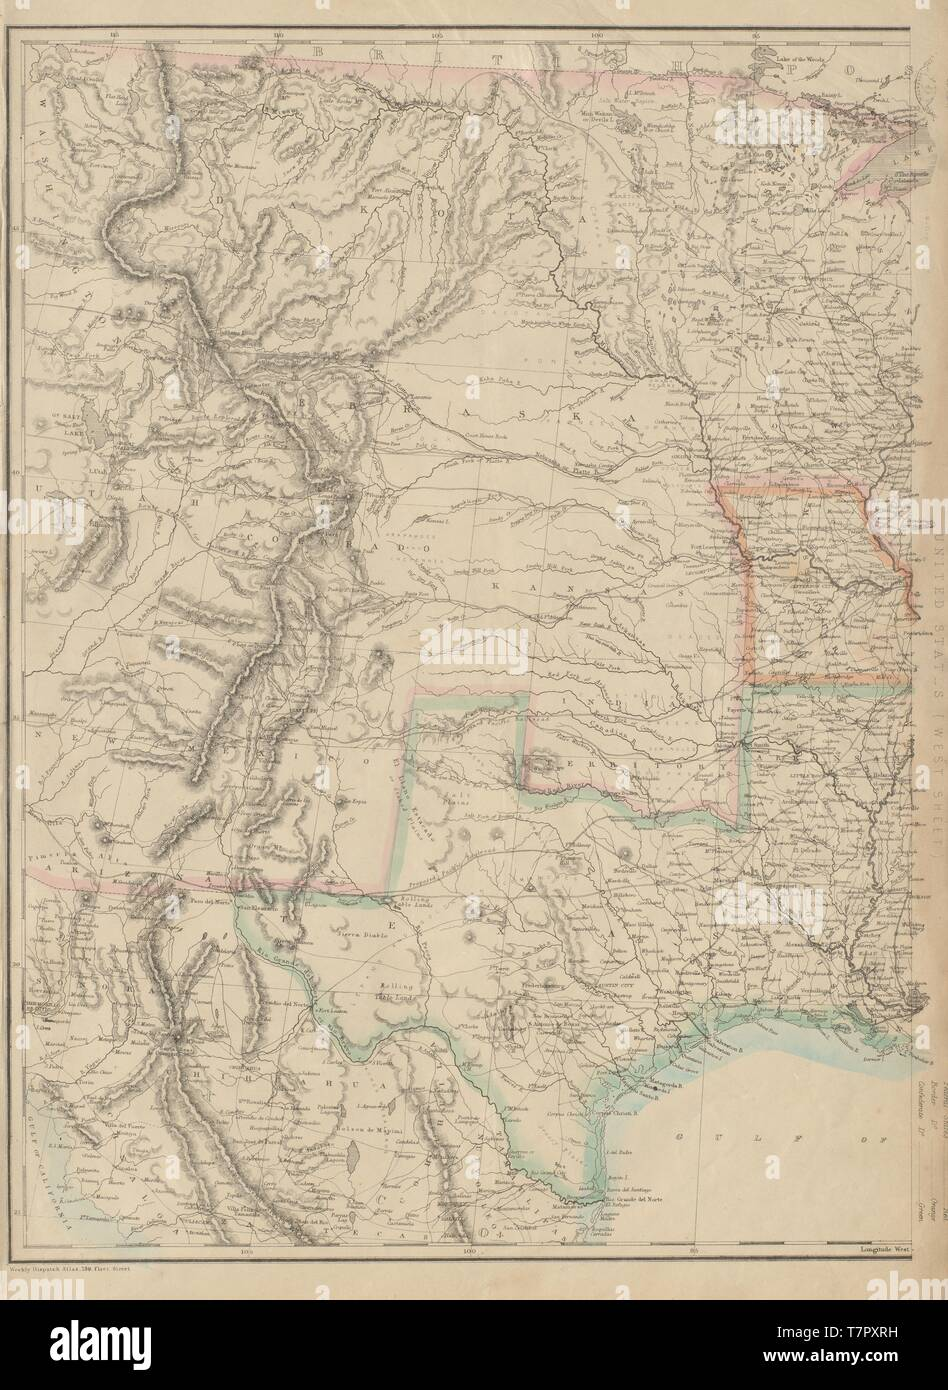 CENTRAL CIVIL WAR USA. Union & Confederate states Texas ...